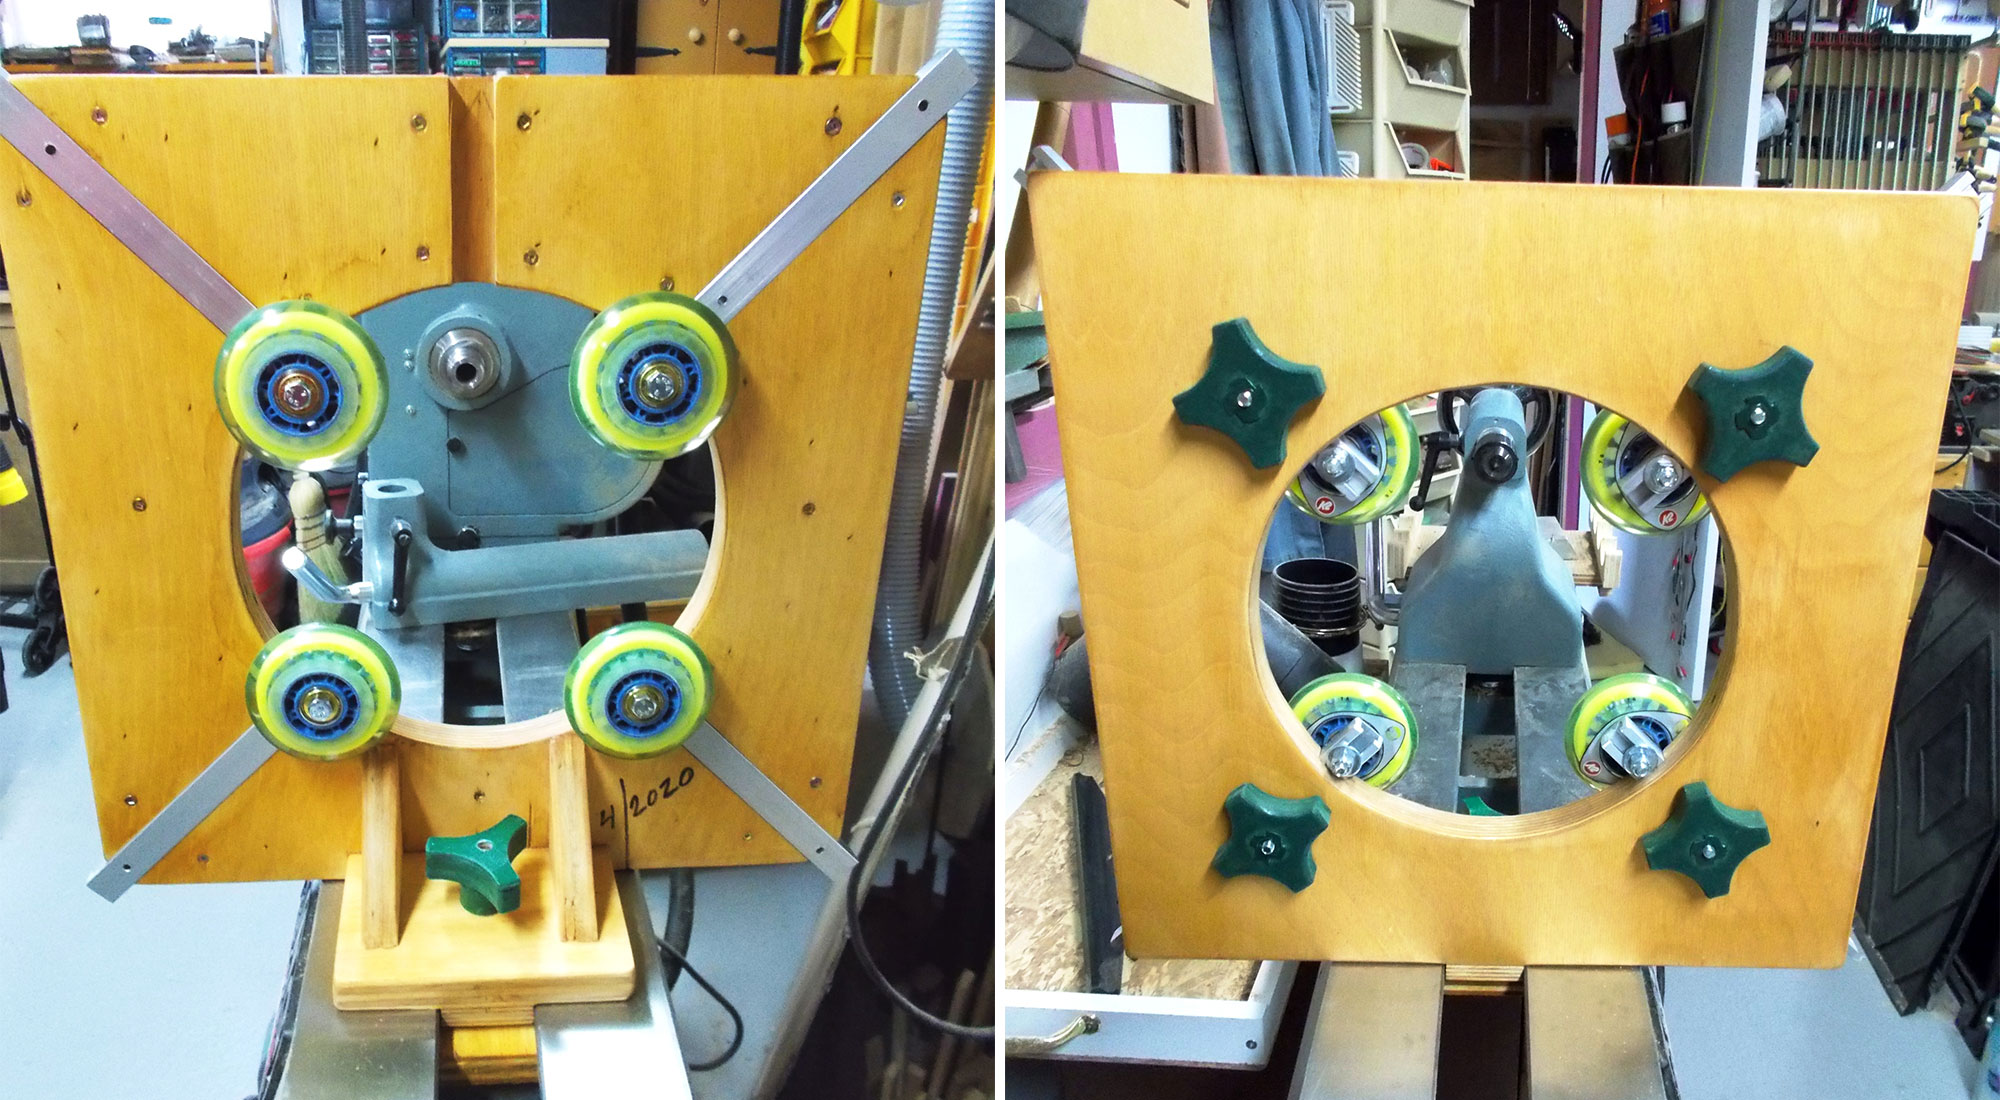 Left: The completed steady rest – front and back. Right: Completed steady rest – back.